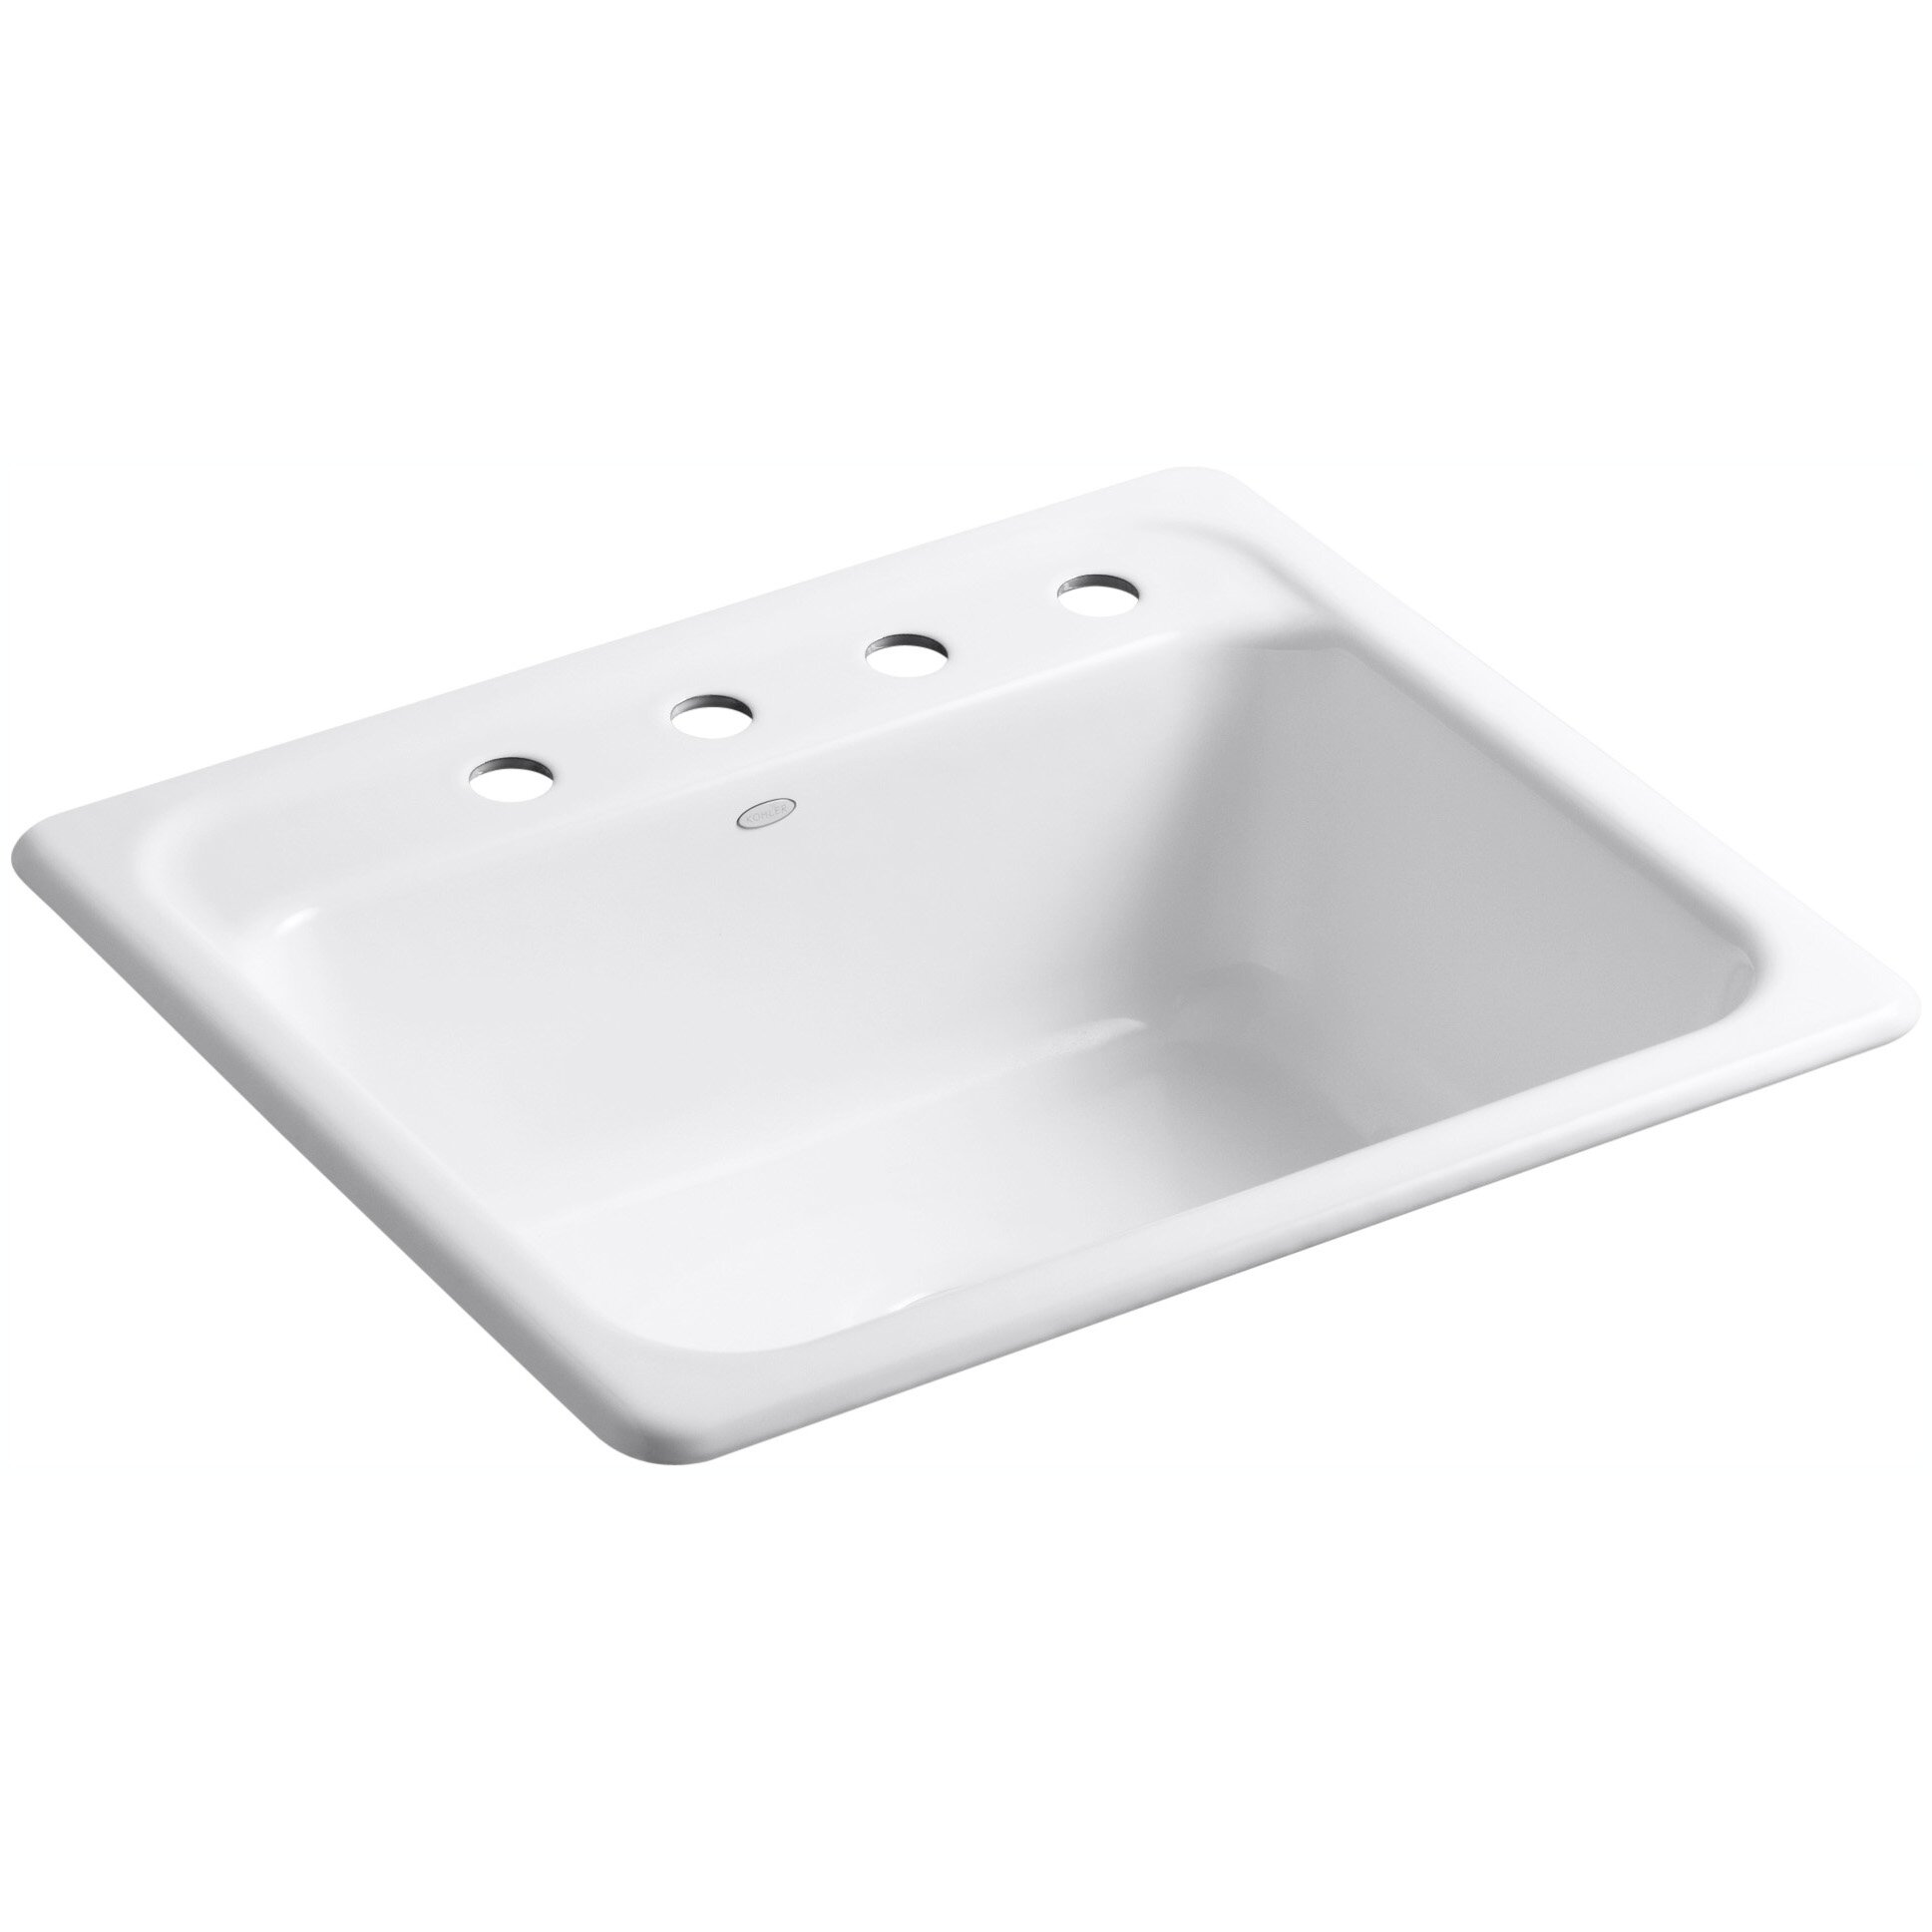 kohler mayfield 25 x 22 x 8 34 top mount single bowl kitchen sink reviews wayfair - Bowl Kitchen Sink